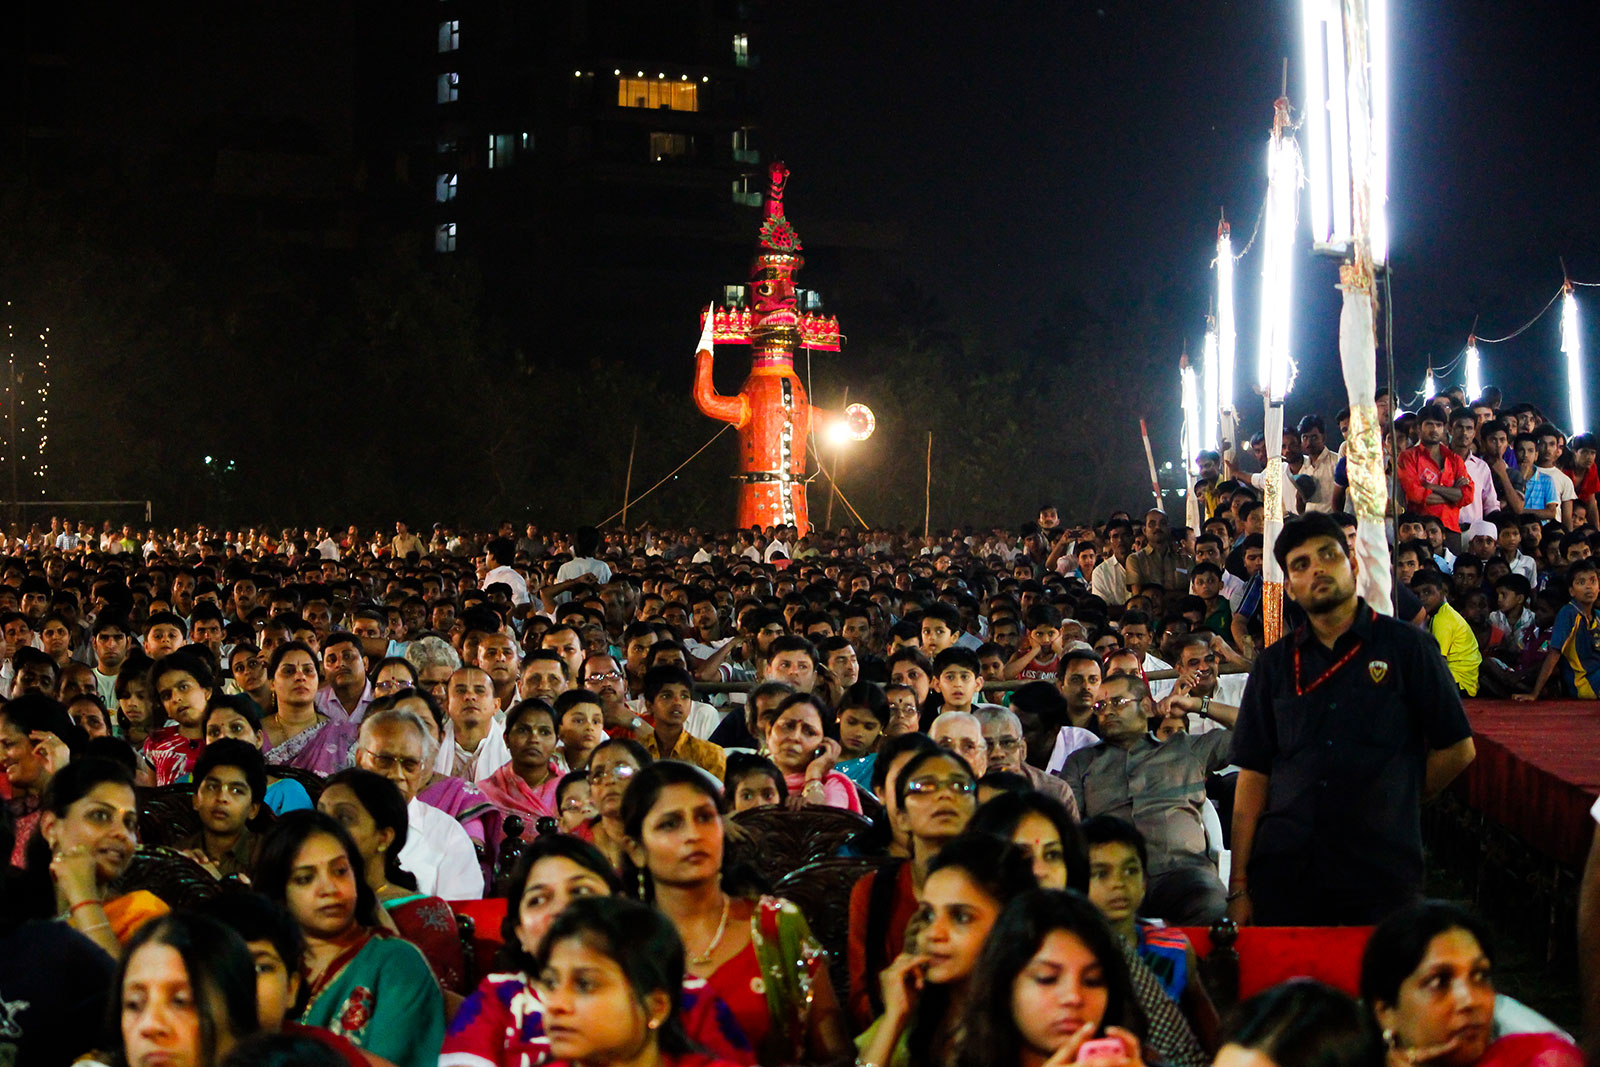 Crowd of people watching Ramleela with Ravana Idol in the background